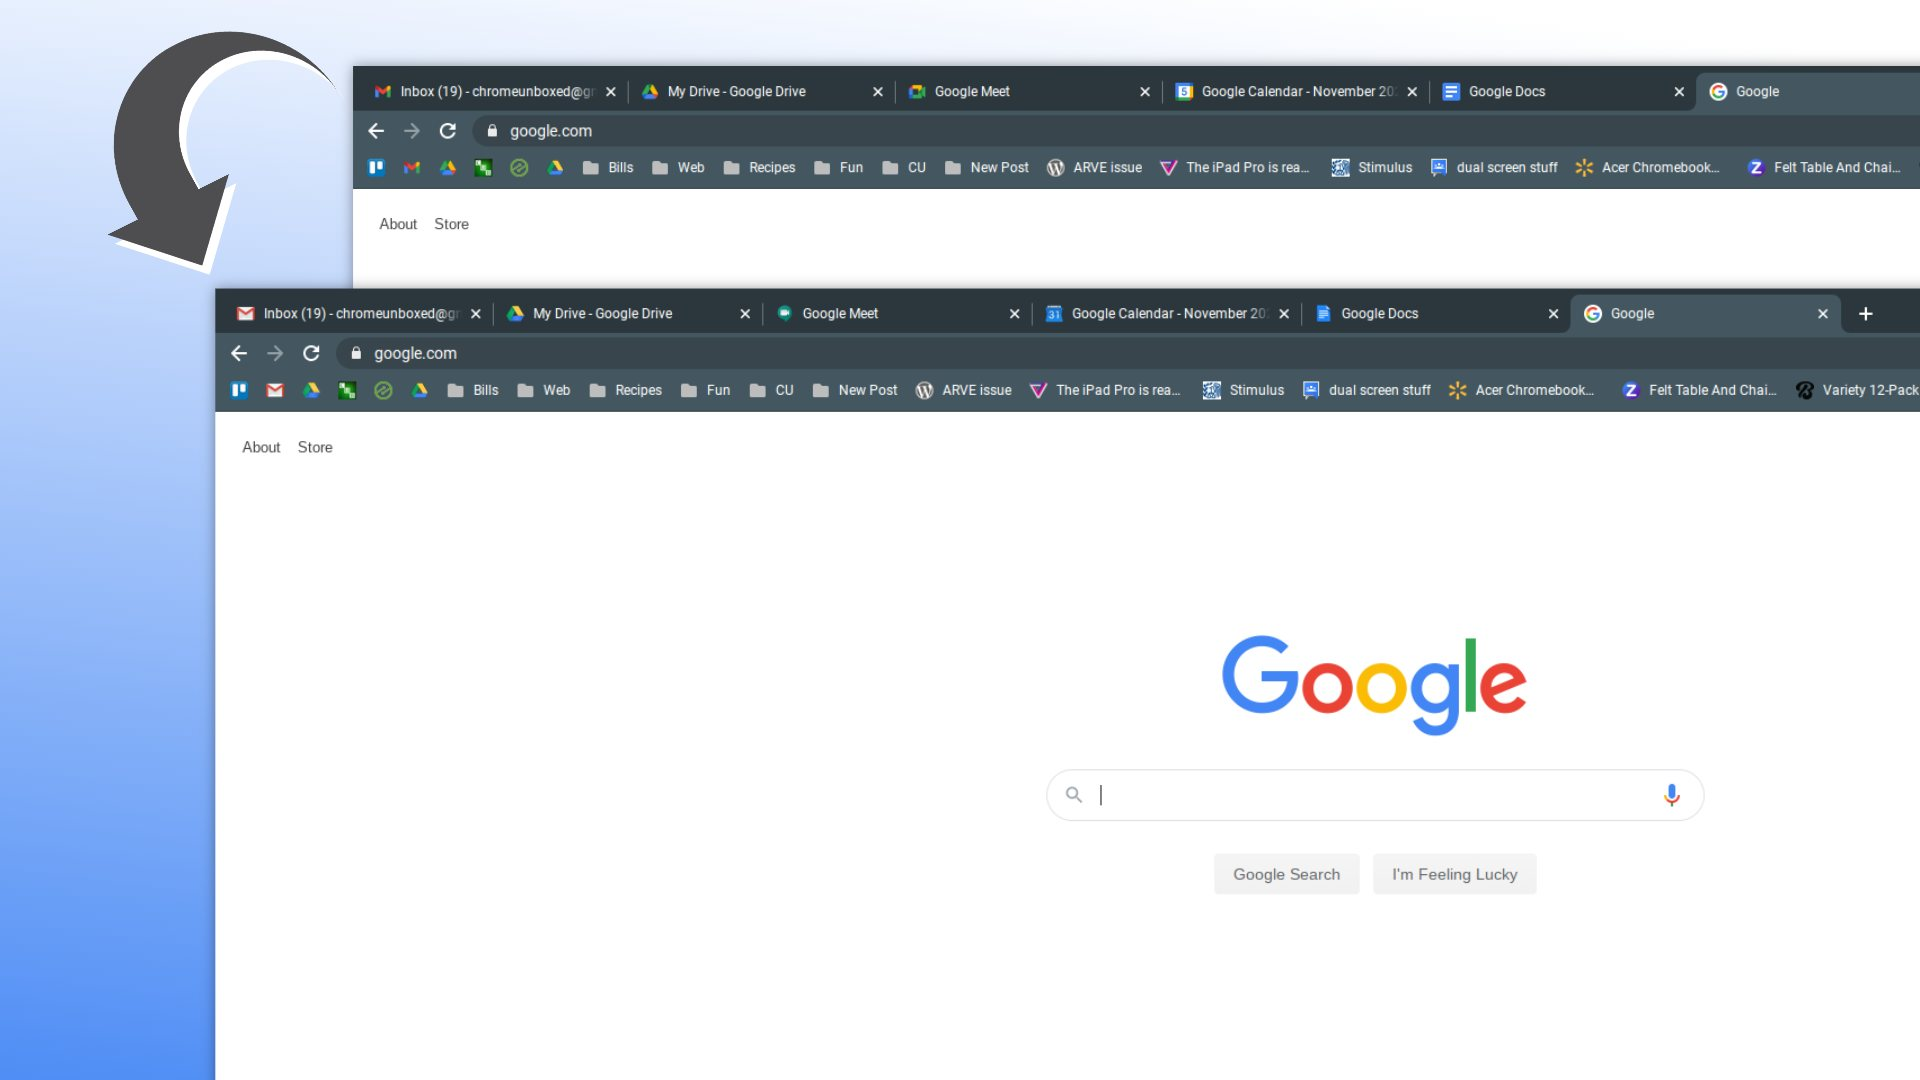 Here's how you can restore the old Google icons for Chrome and why you may want to